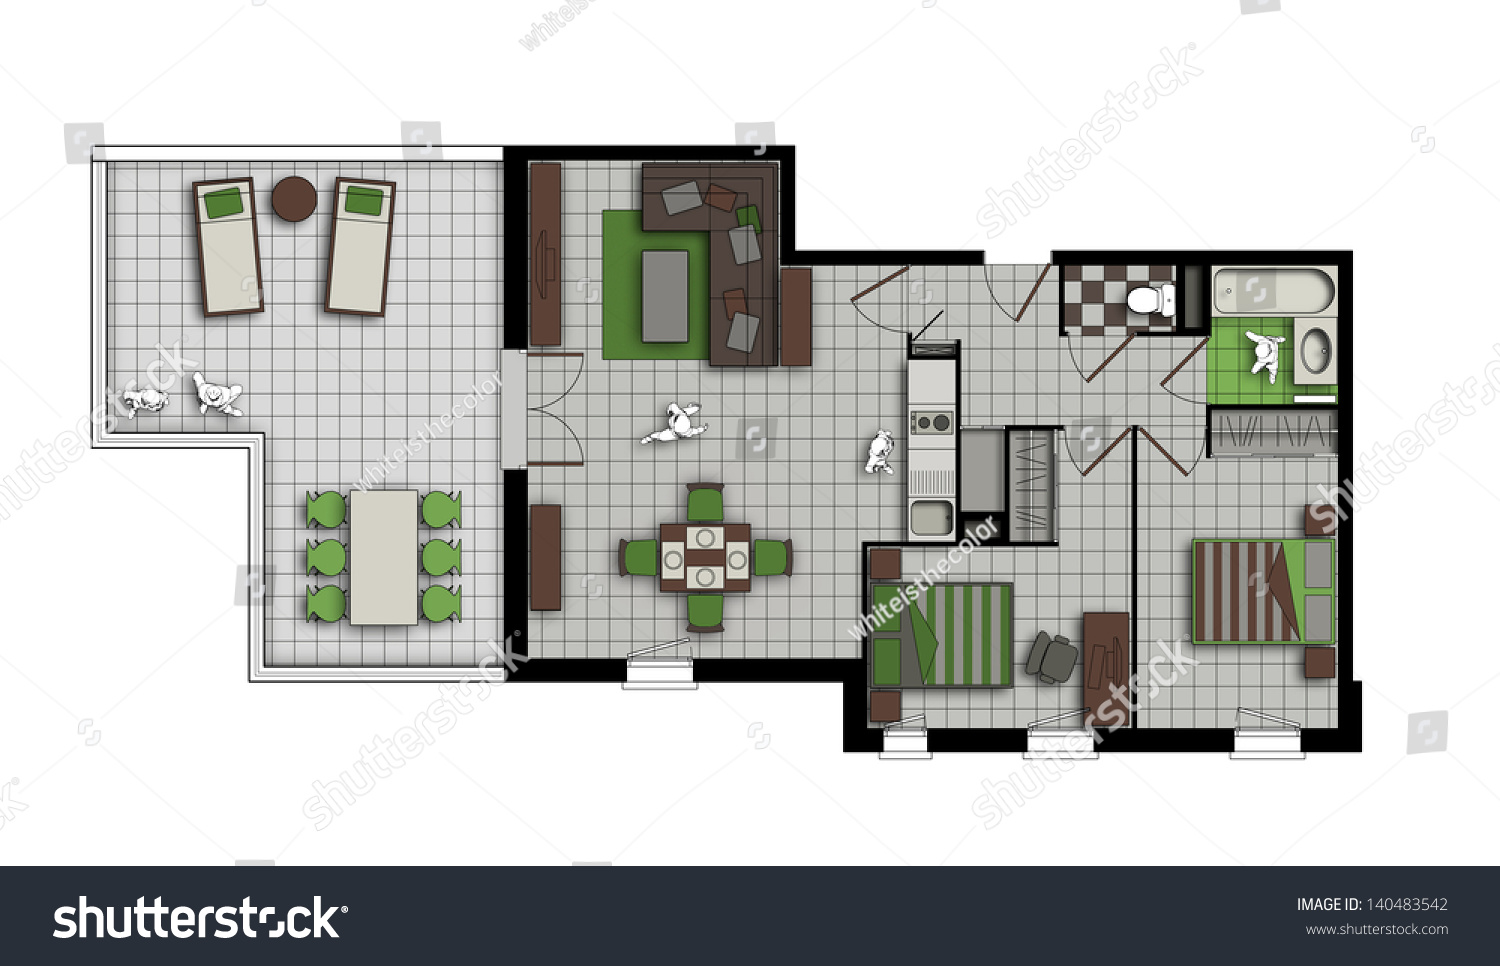 top view of an interior of three-room apartment with a terrace in grey,